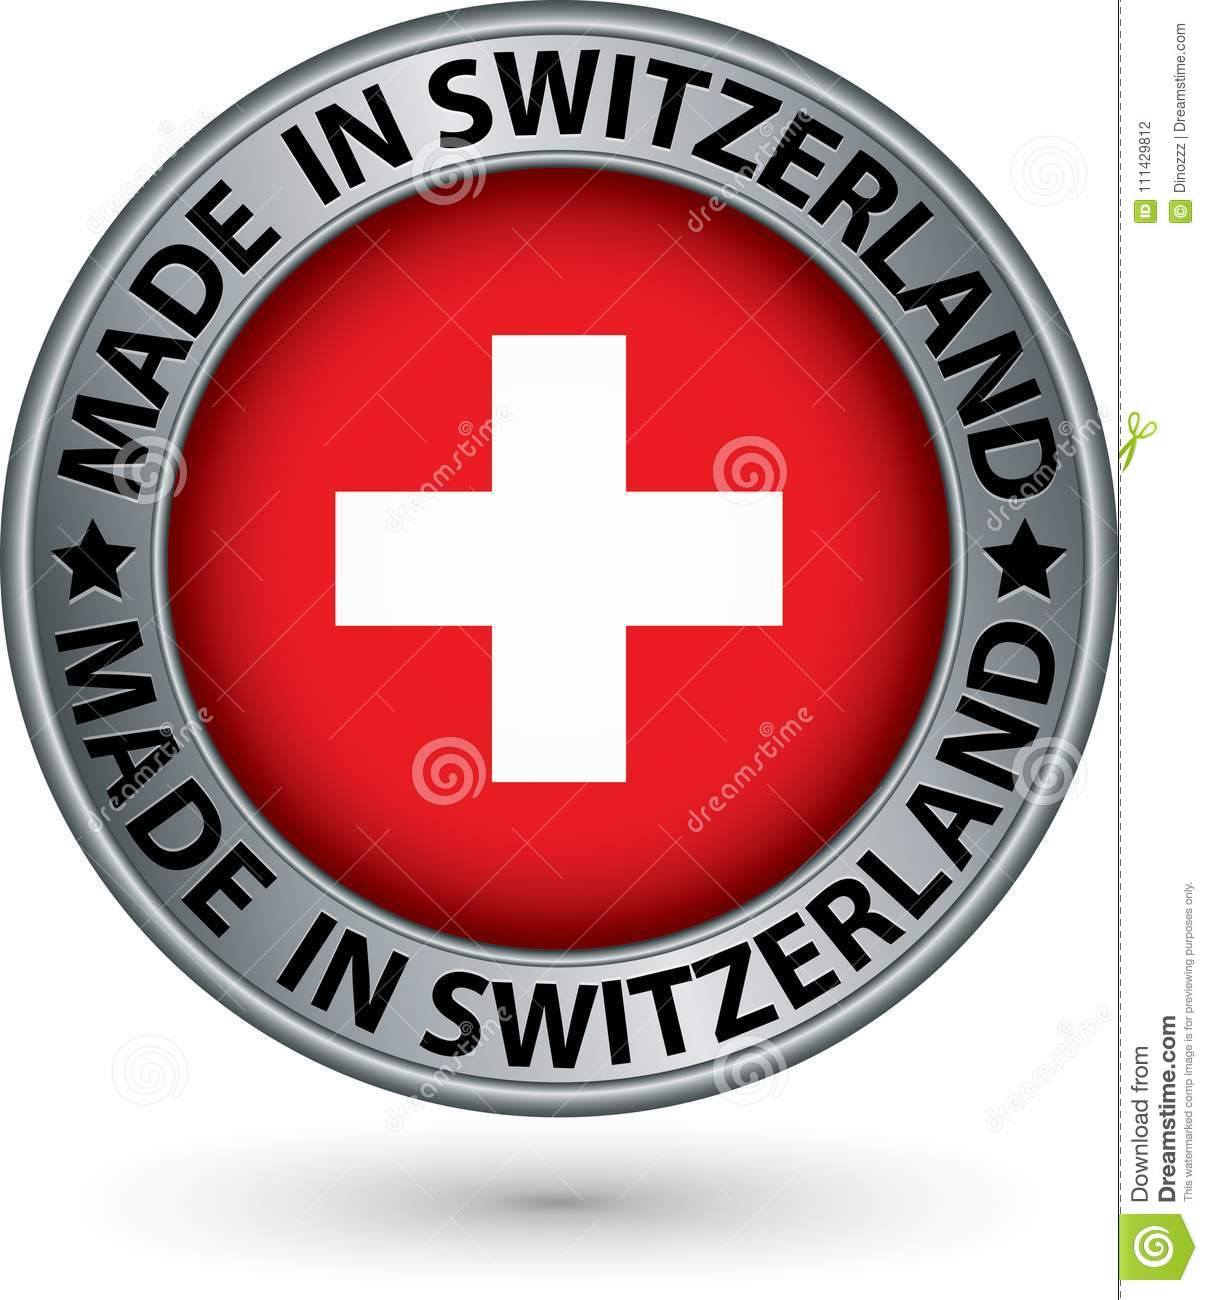 This is an image of Inventive Made in Switzerland Label